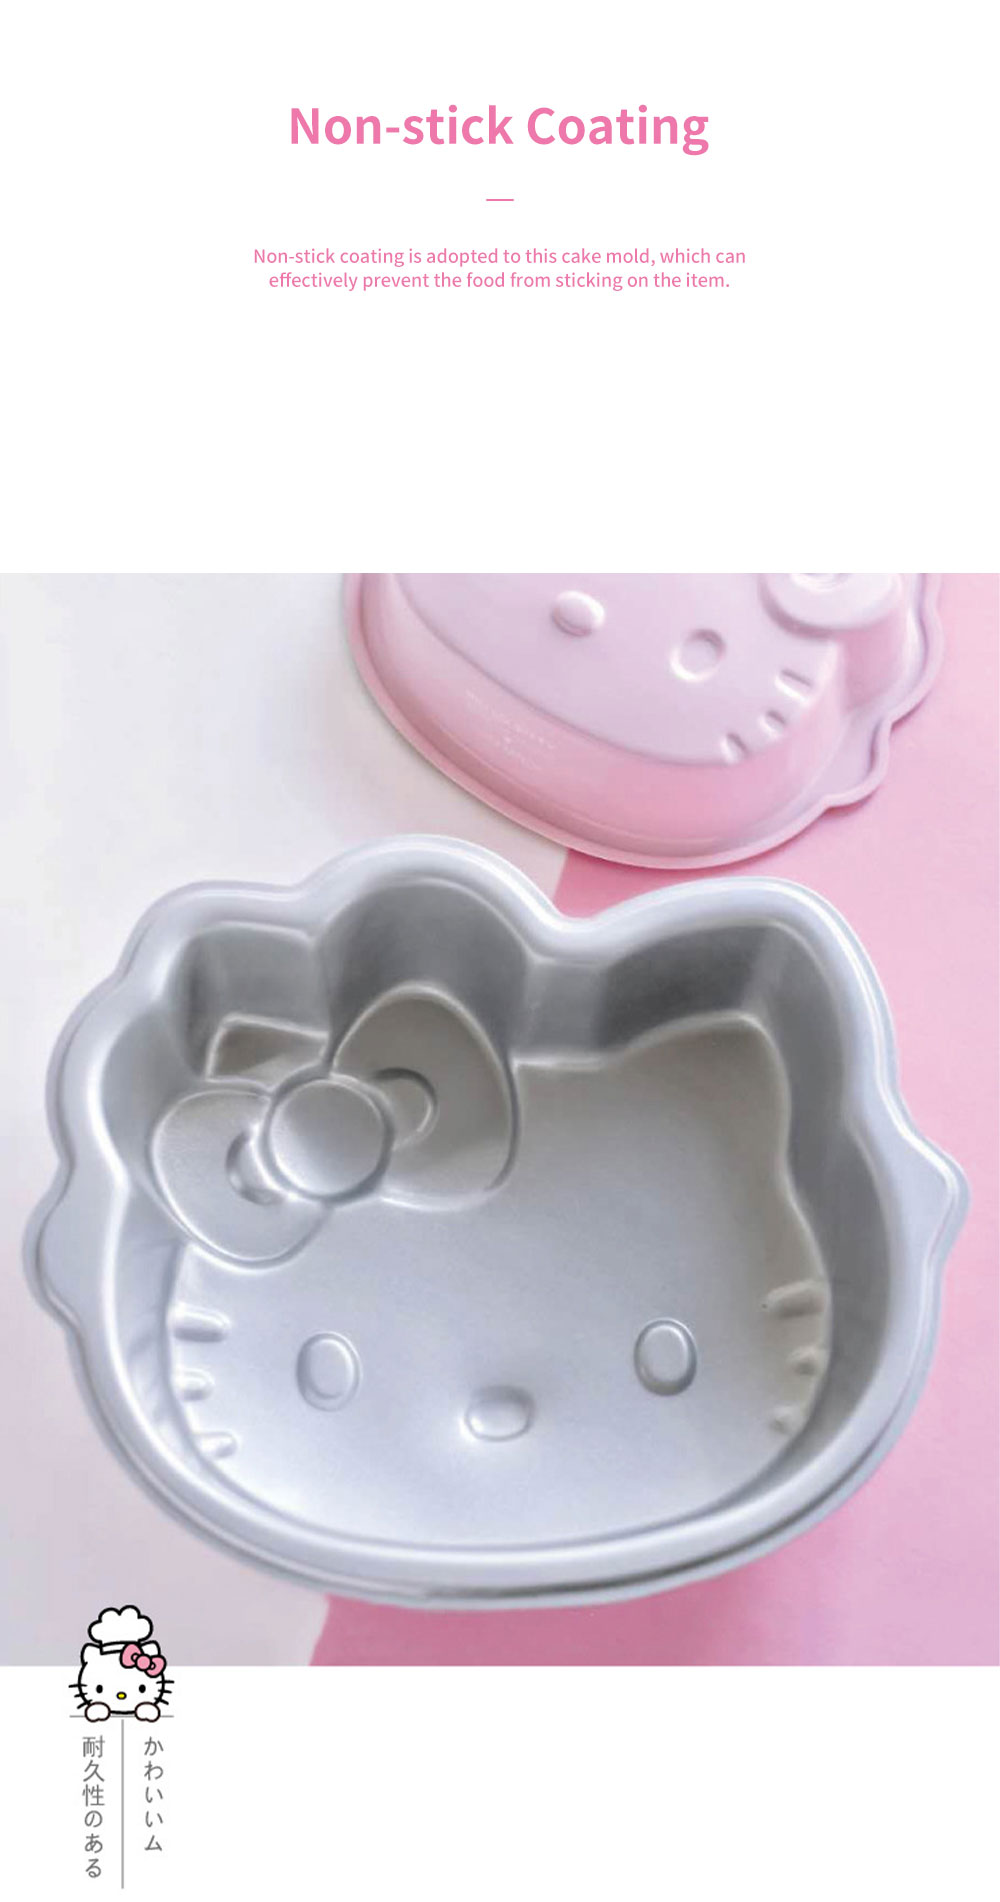 Cute Kitty Model Heat-resistance Carbon Steel 8-inch Cake Jelly Mold Kitchen Baking Assistant Stool 2